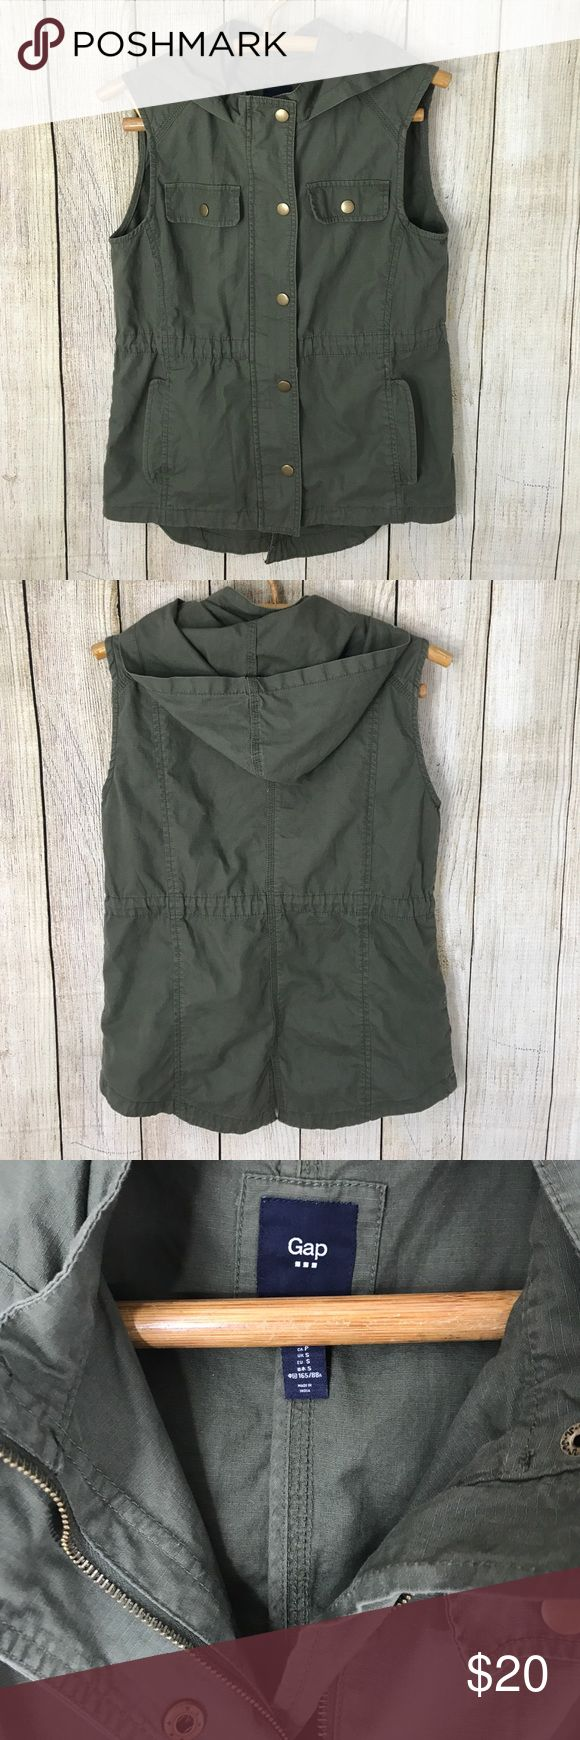 """Gap olive green zip up button cargo utility vest Perfect for upcoming fall ! Olive green cargo vest either adjustable waist and pockets. Zips up and has buttons, hood. Size S 25"""" long 18"""" across bust. GAP Jackets & Coats Vests"""